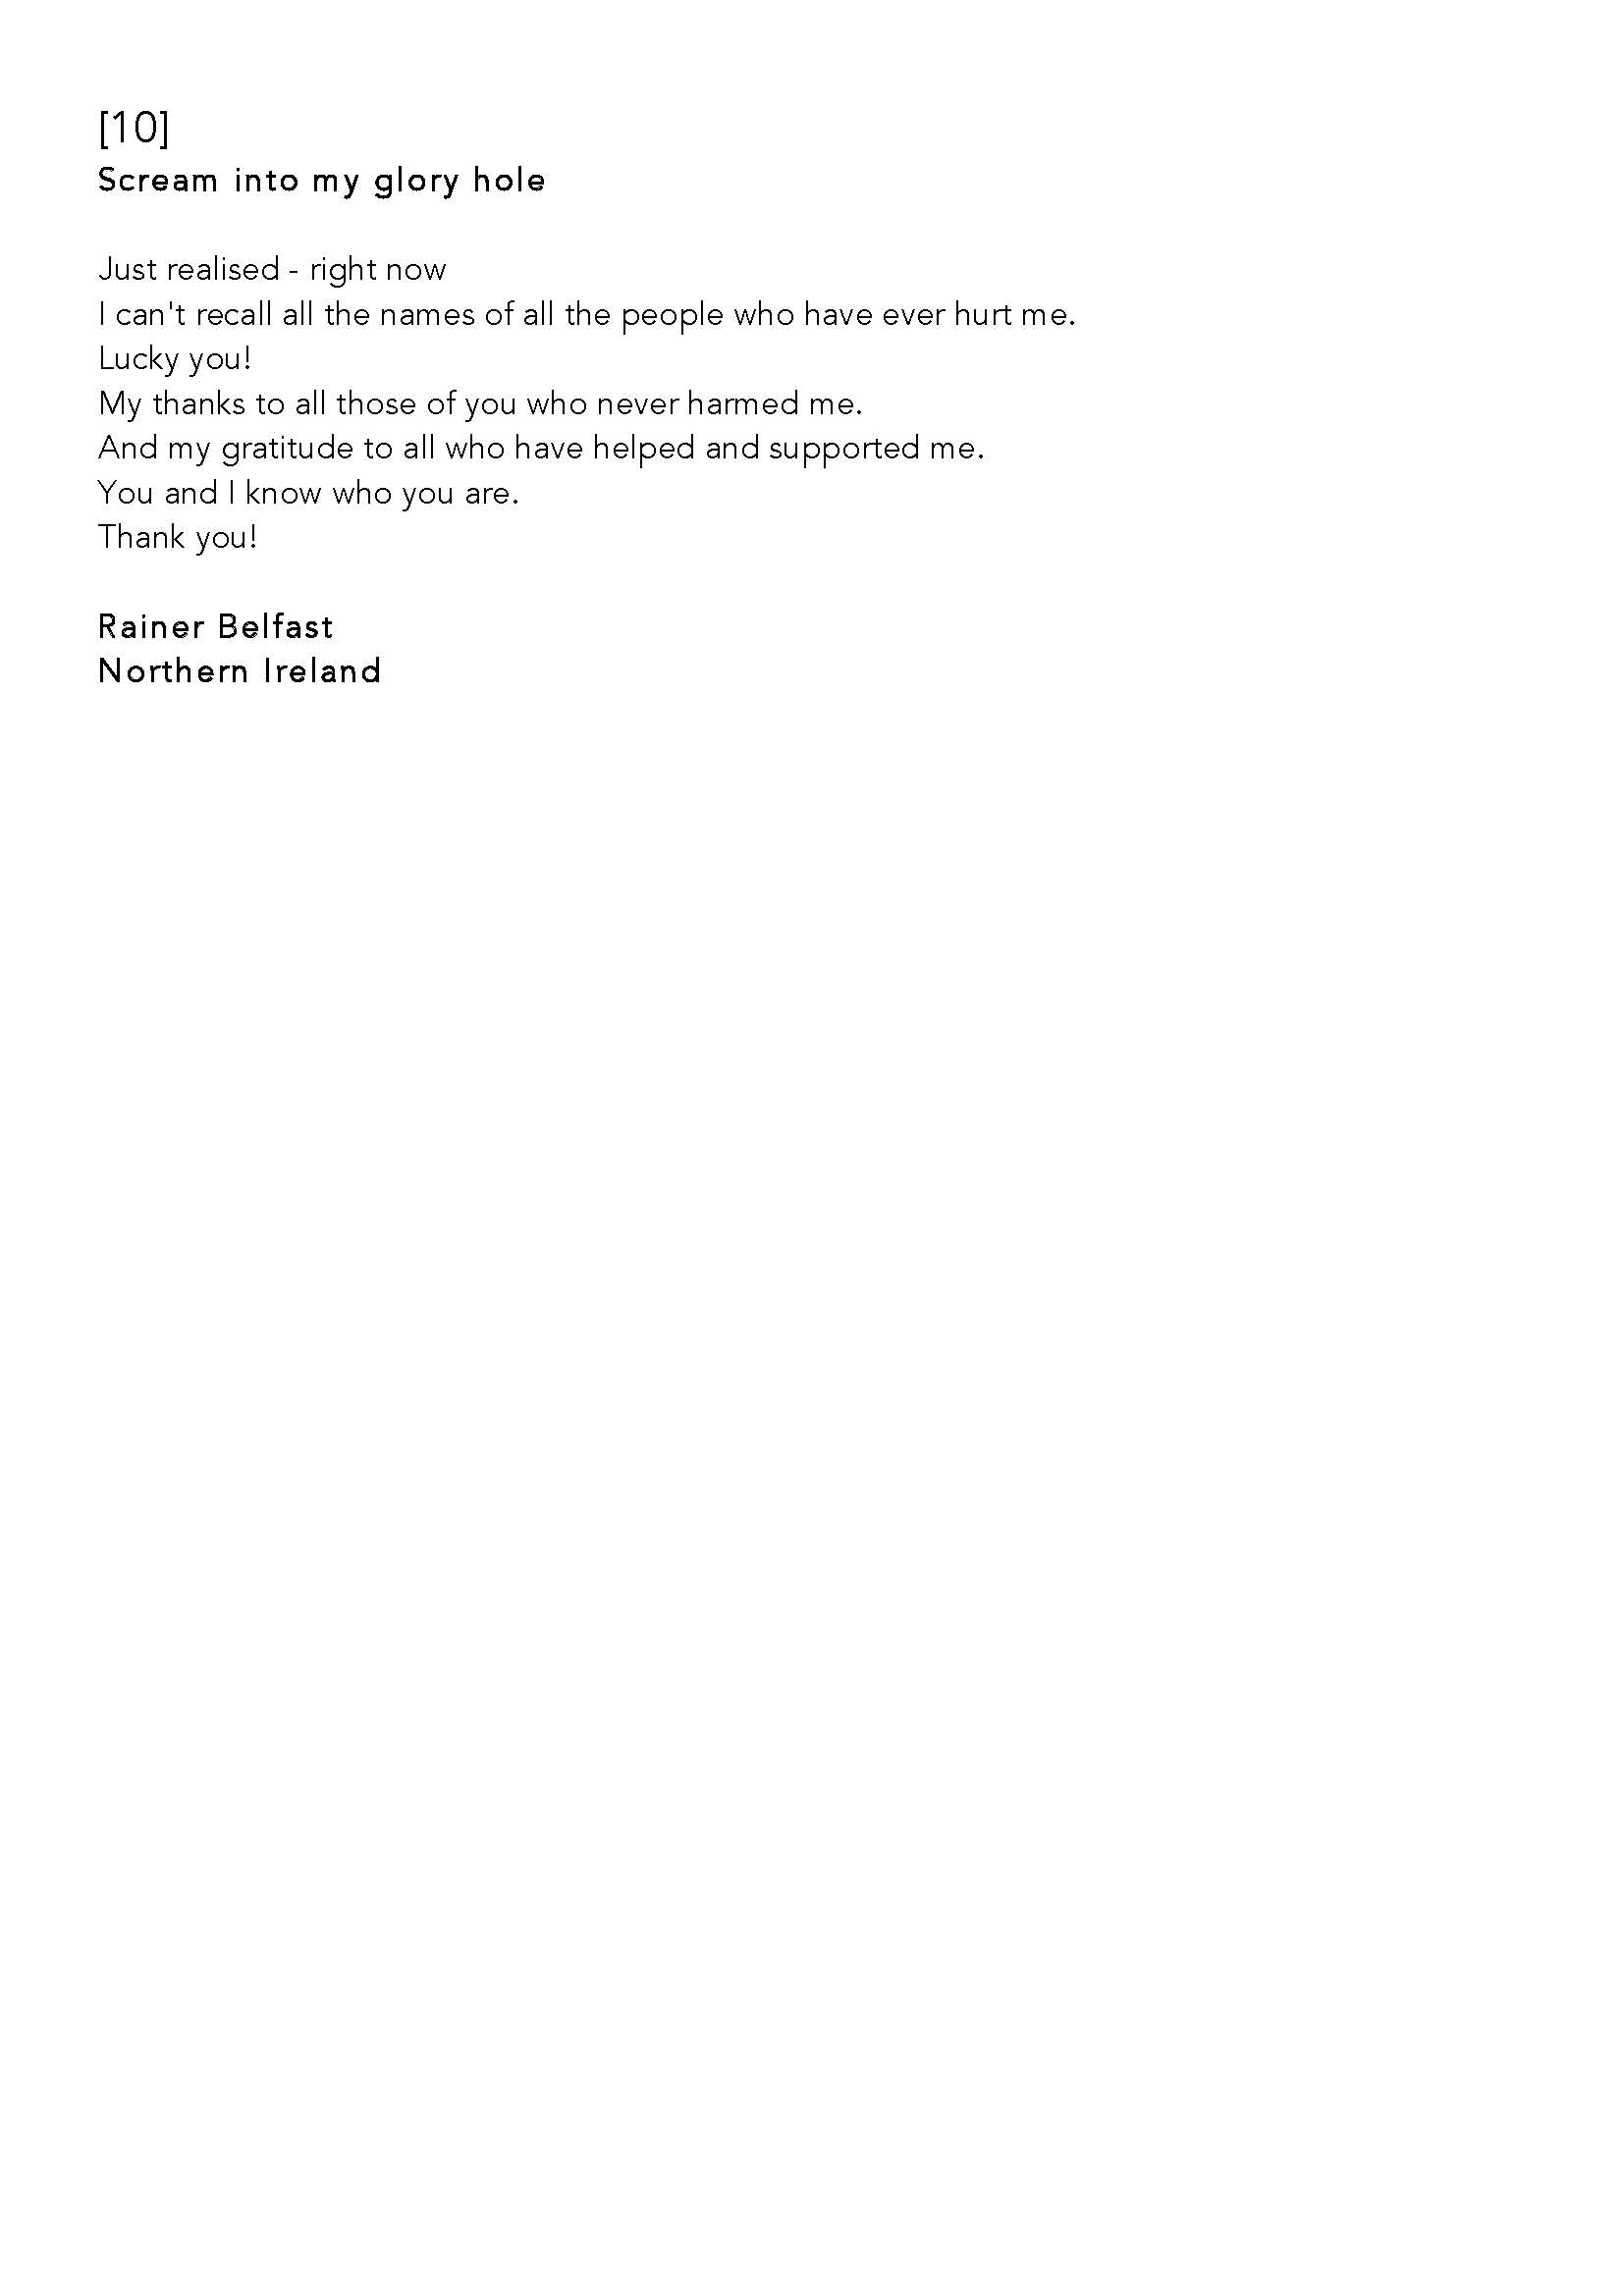 Poetry Collection - Everyone can Poetry _ For 12 May 2014 - R2_Page_10.jpg